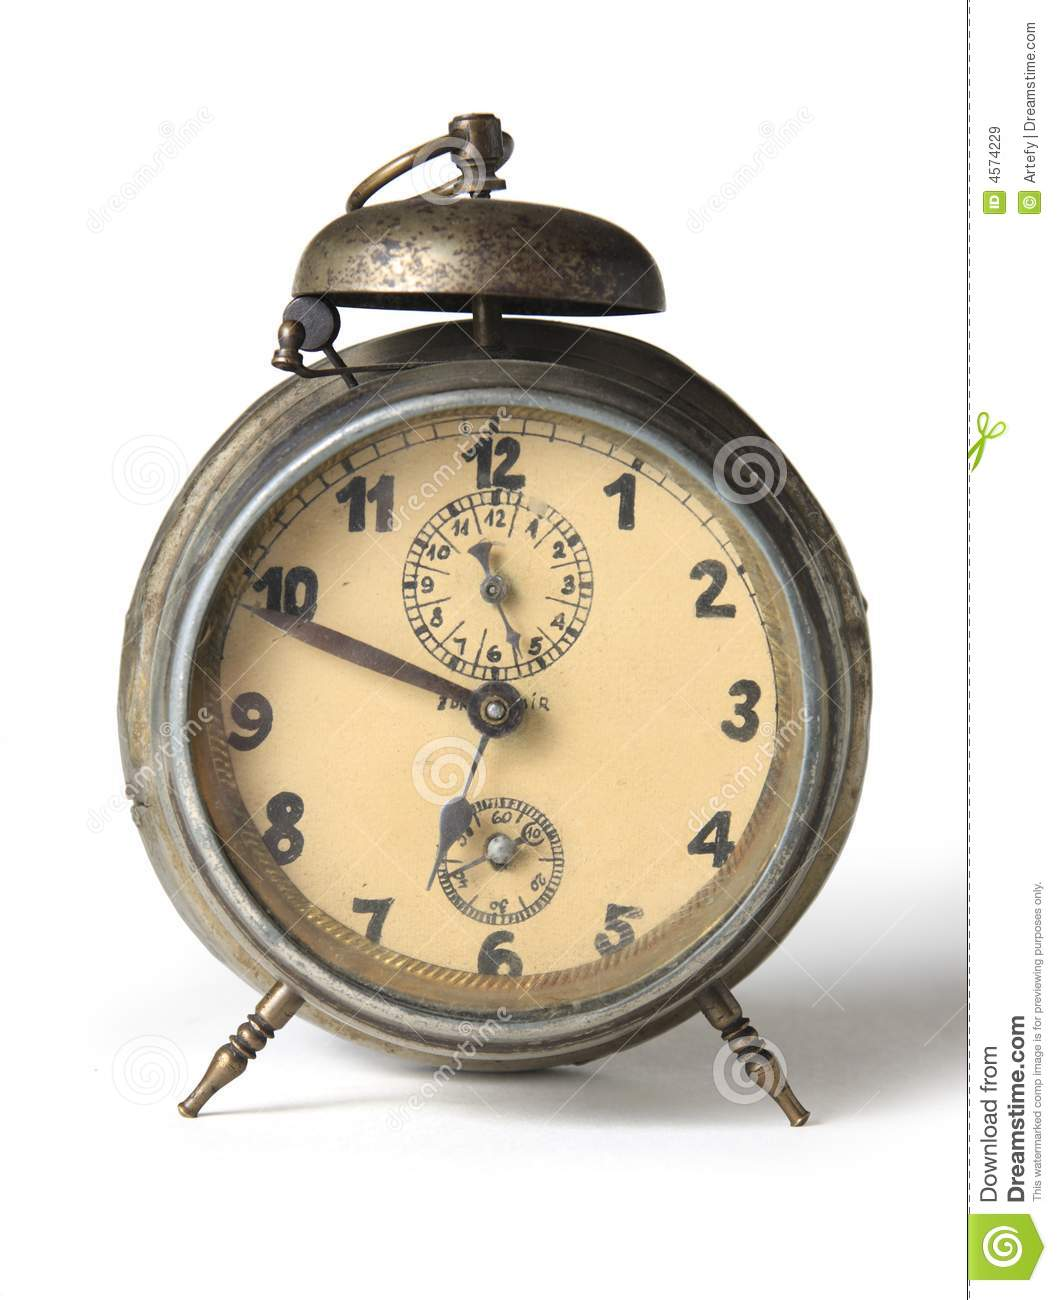 Old Alarm-clock Royalty Free Stock Images - Image: 4574229